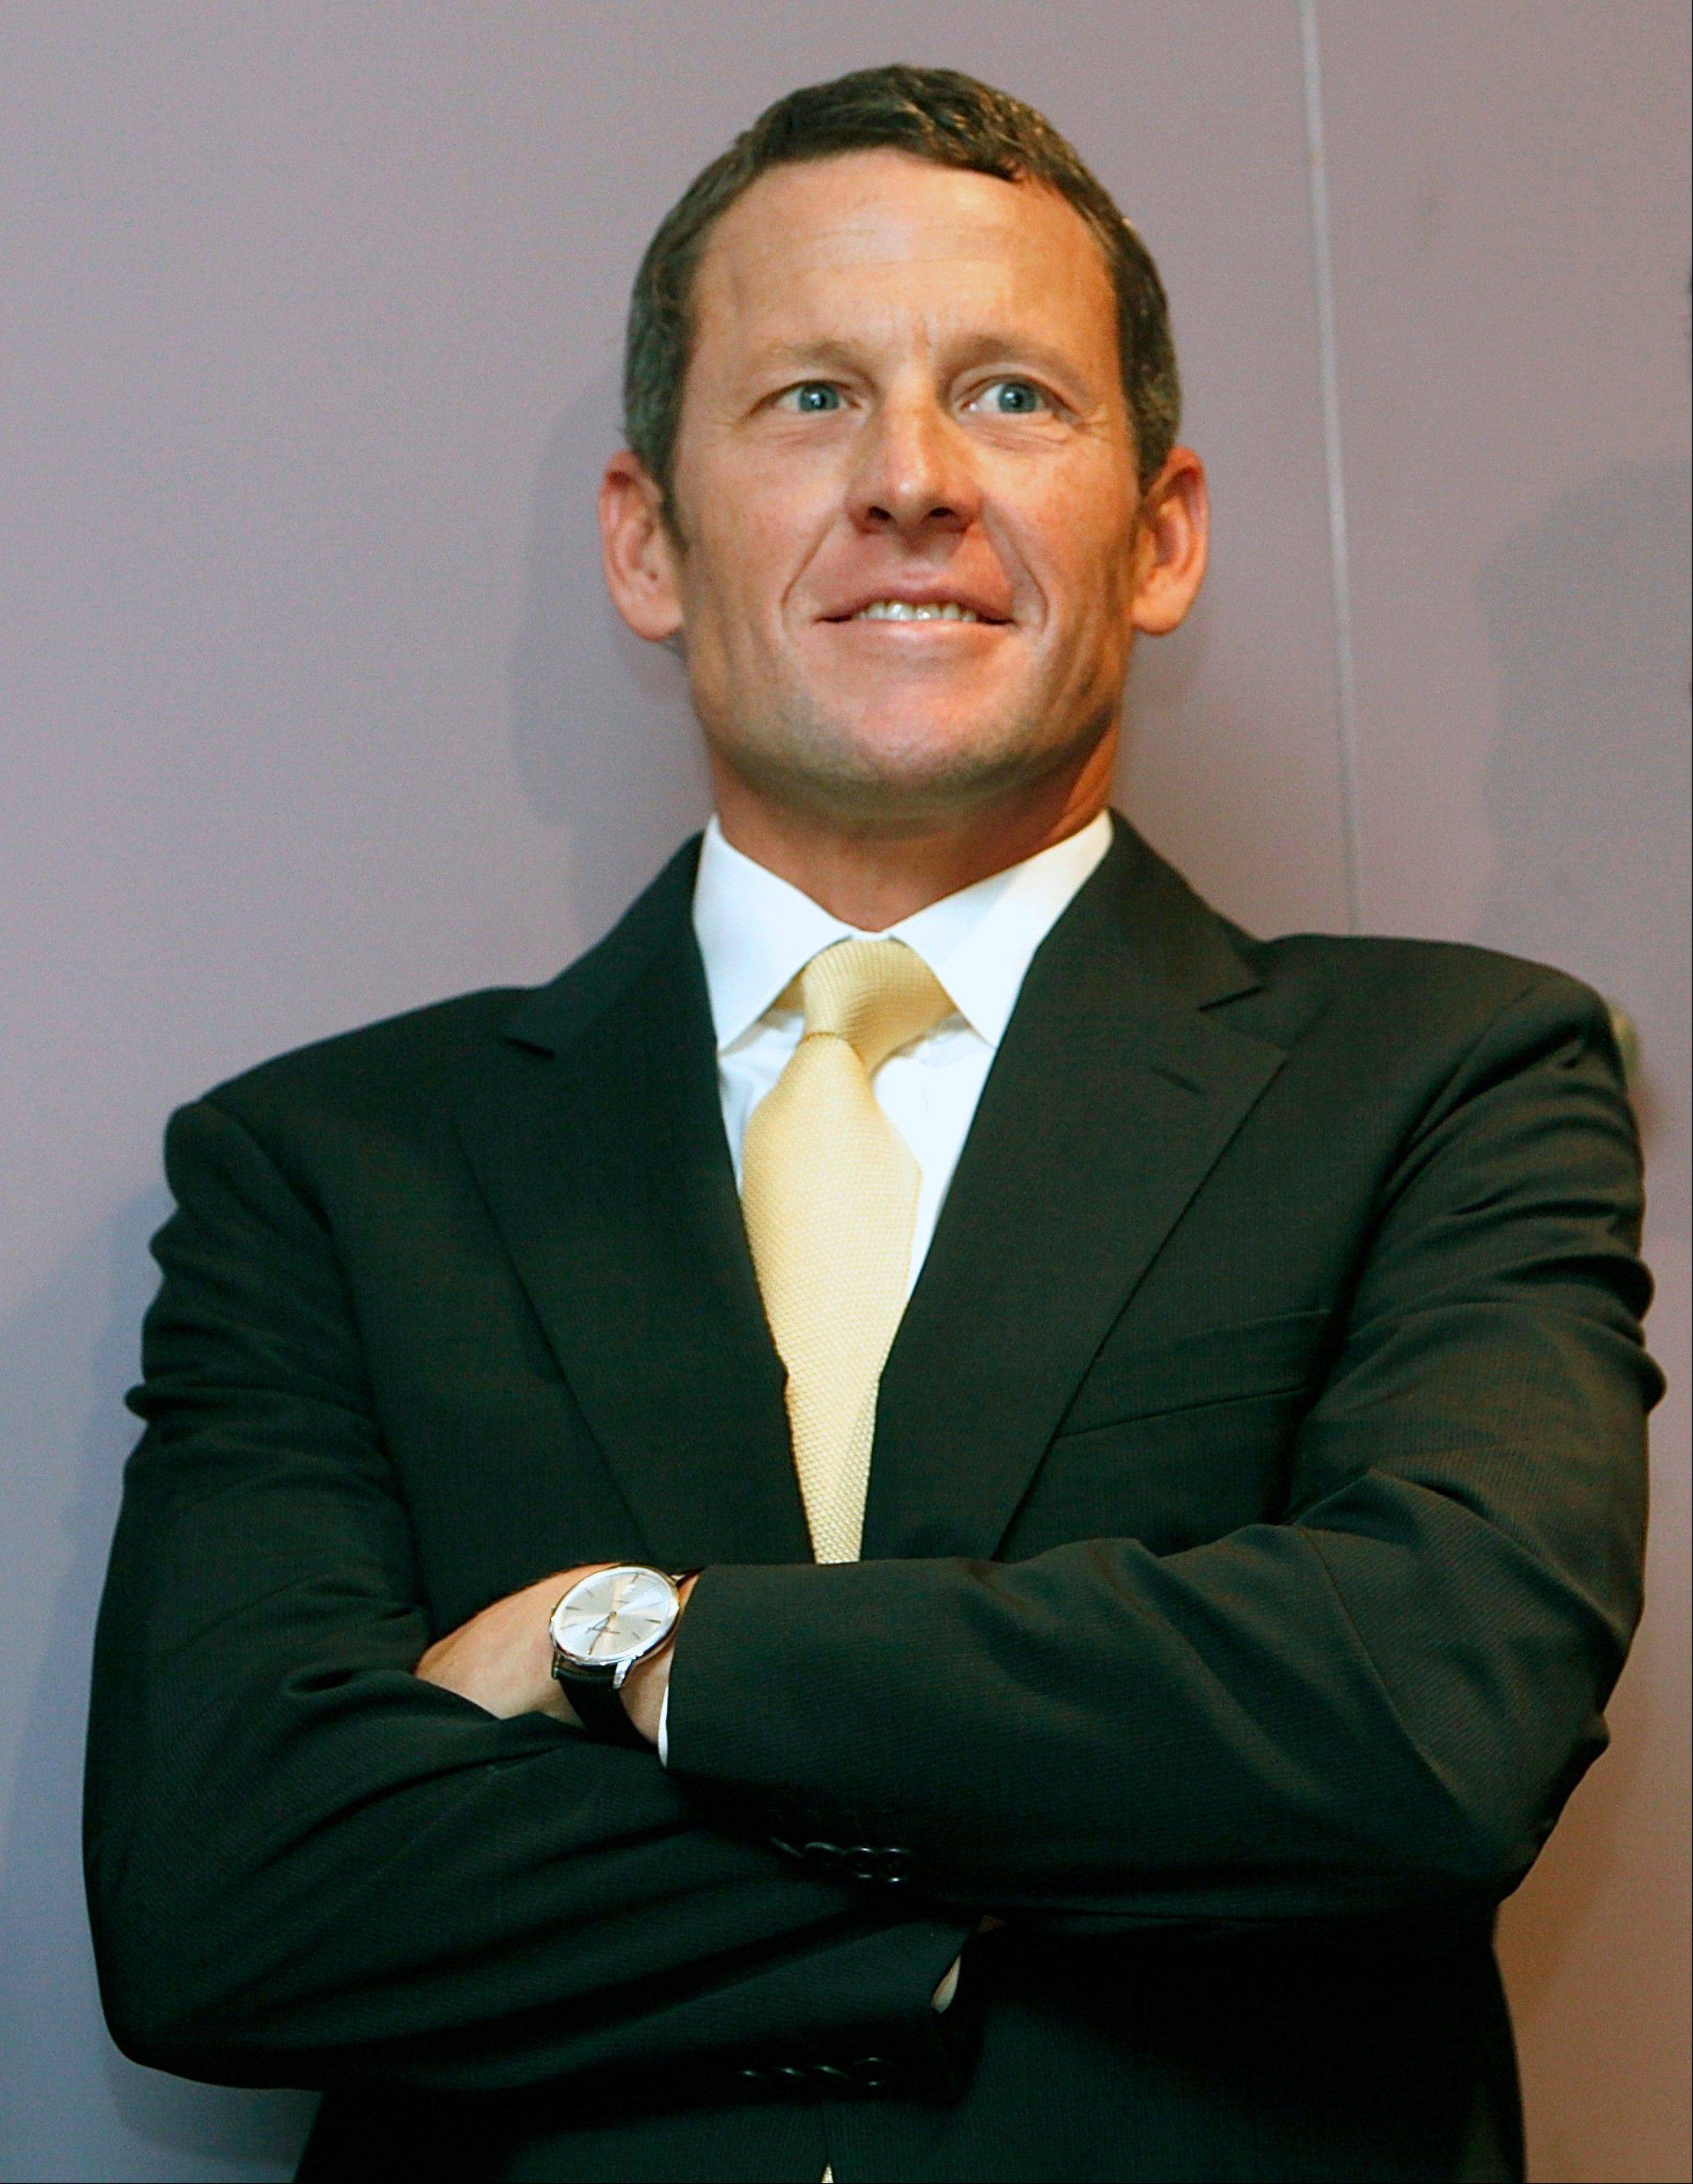 Lance Armstrong is asking a federal court to block the latest doping charges against him. The seven-time Tour de France winner filed a lawsuit in Austin, Texas, on Monday. Through his attorneys, he argues the U.S. Anti-Doping Agency violates the constitutional rights of athletes when it brings charges against them, and that USADA should not be allowed to pursue charges Armstrong used performance-enhancing drugs during his career.